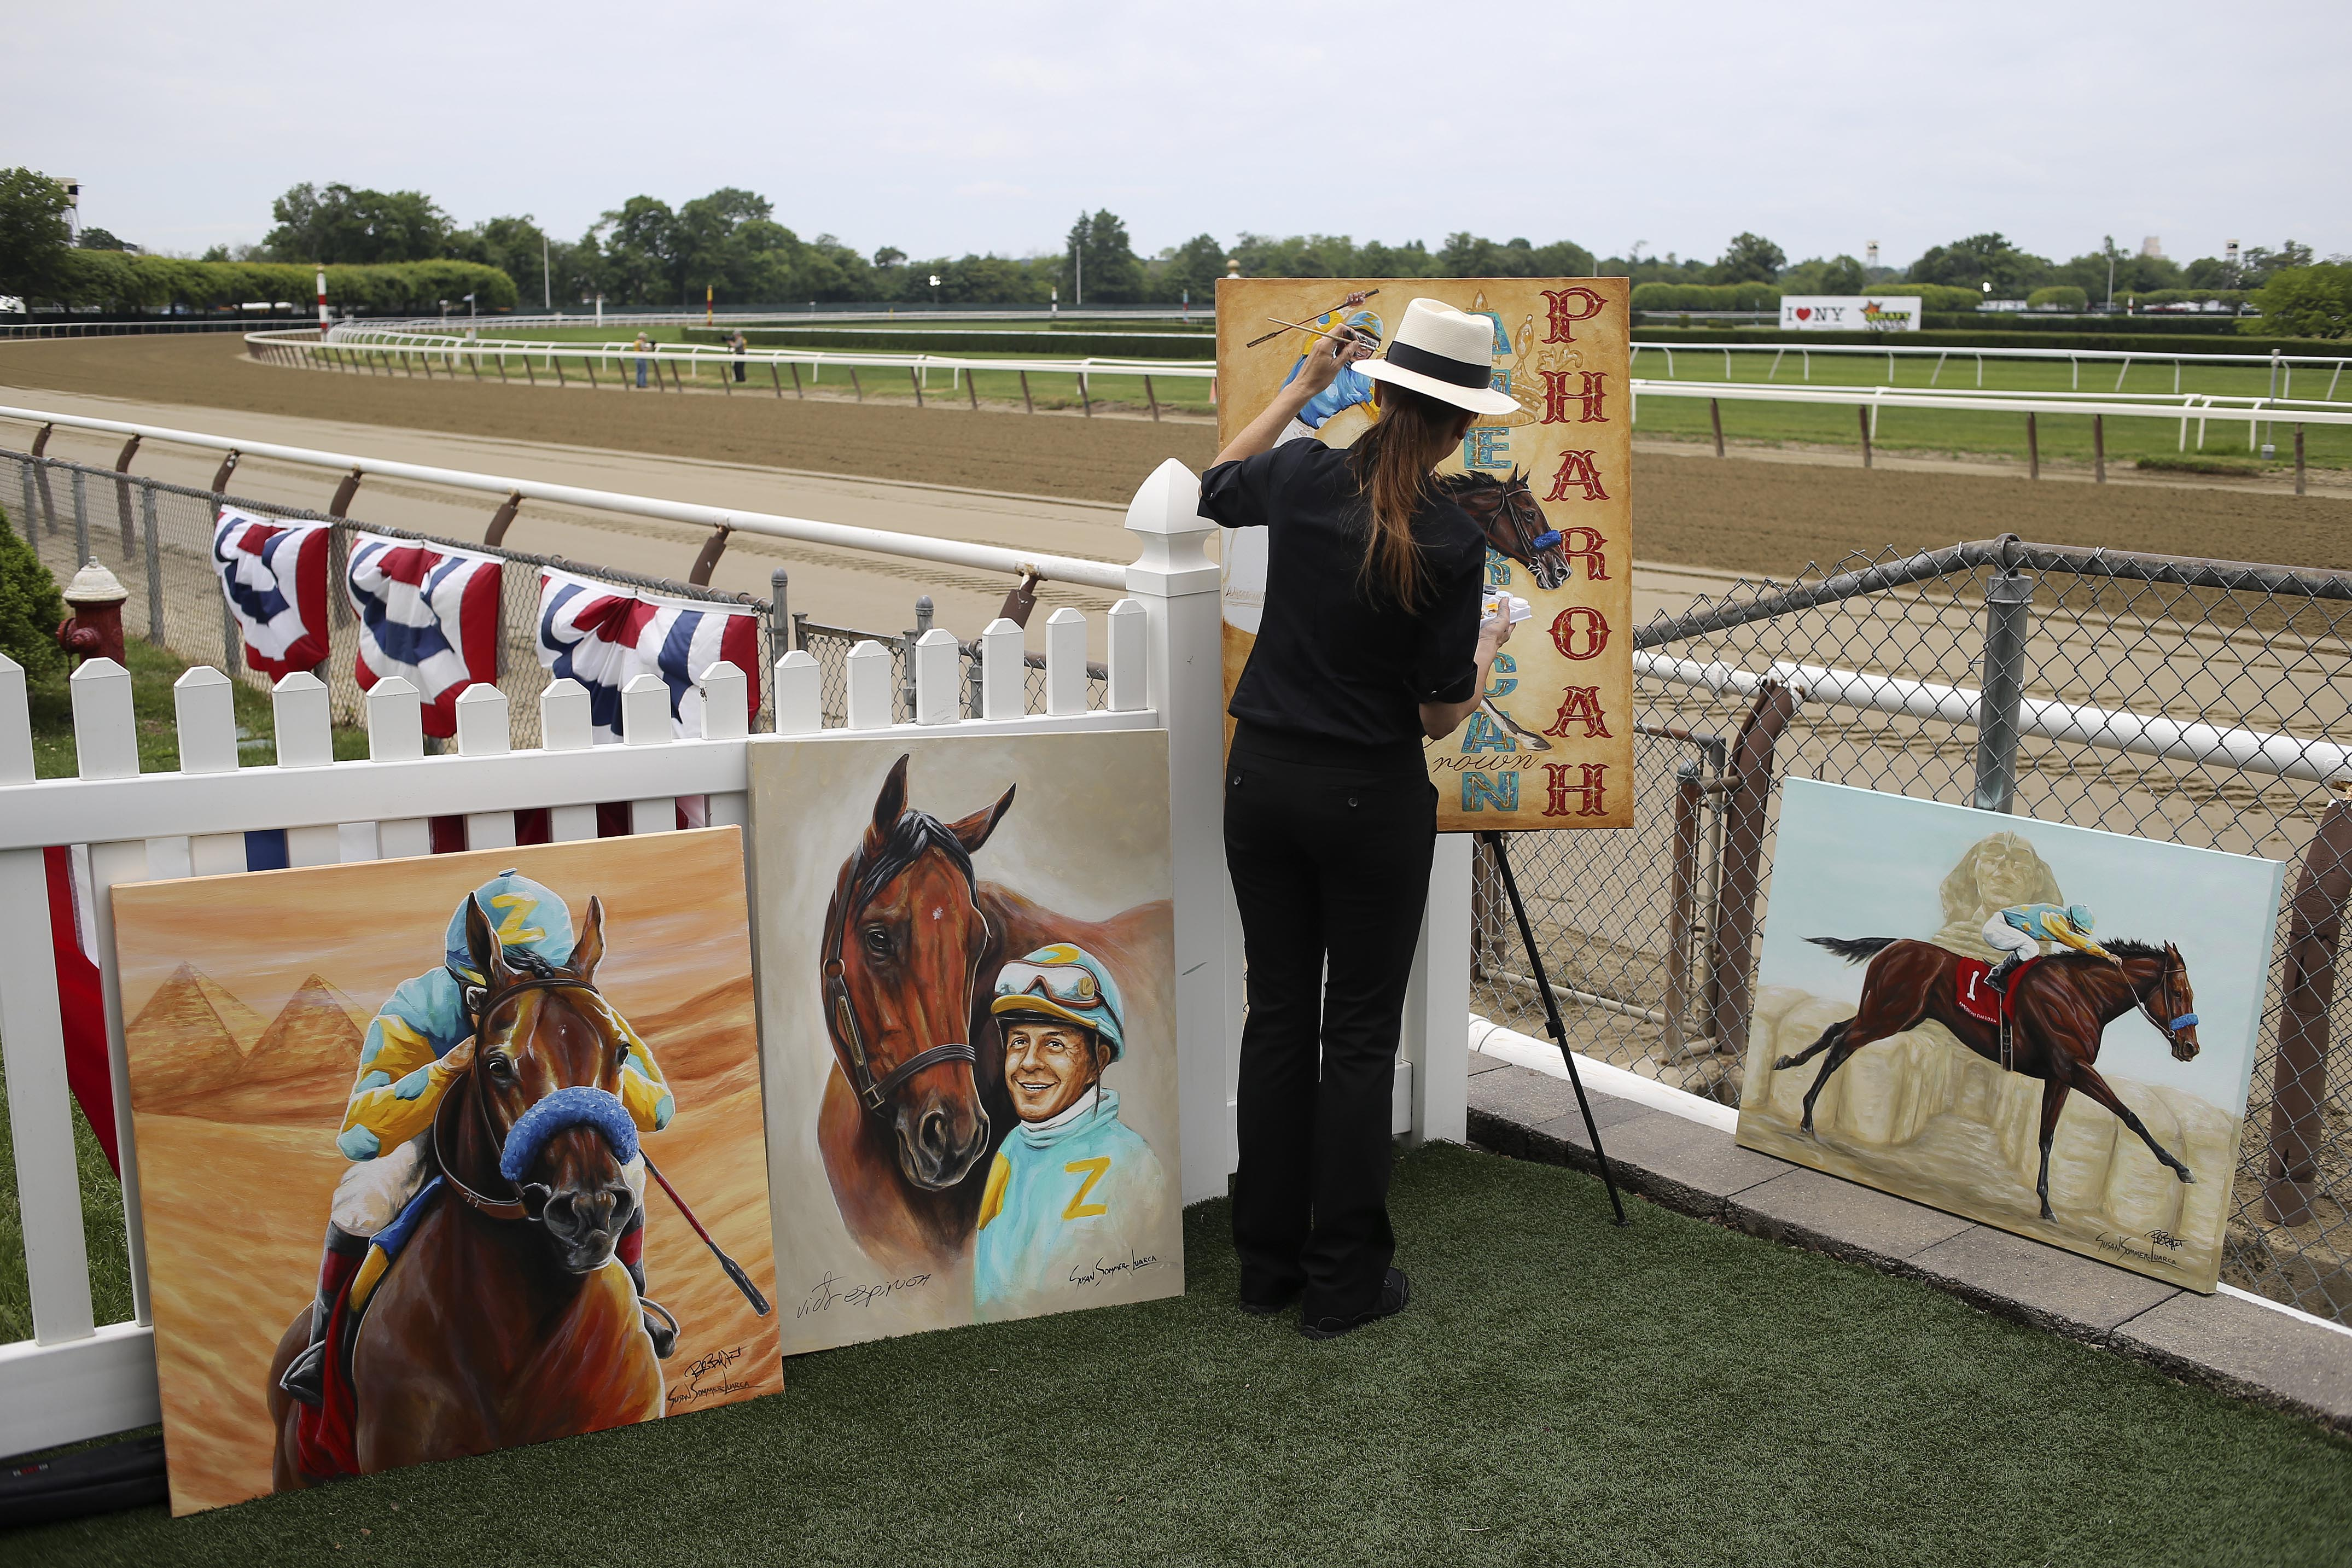 Painter Susan Sommer-Luarca paints a picture of American Pharoah before the 147th running of the Belmont Stakes horse race at Belmont Park, Saturday, June 6, 2015, in Elmont, N.Y. (AP Photo/Seth Wenig)